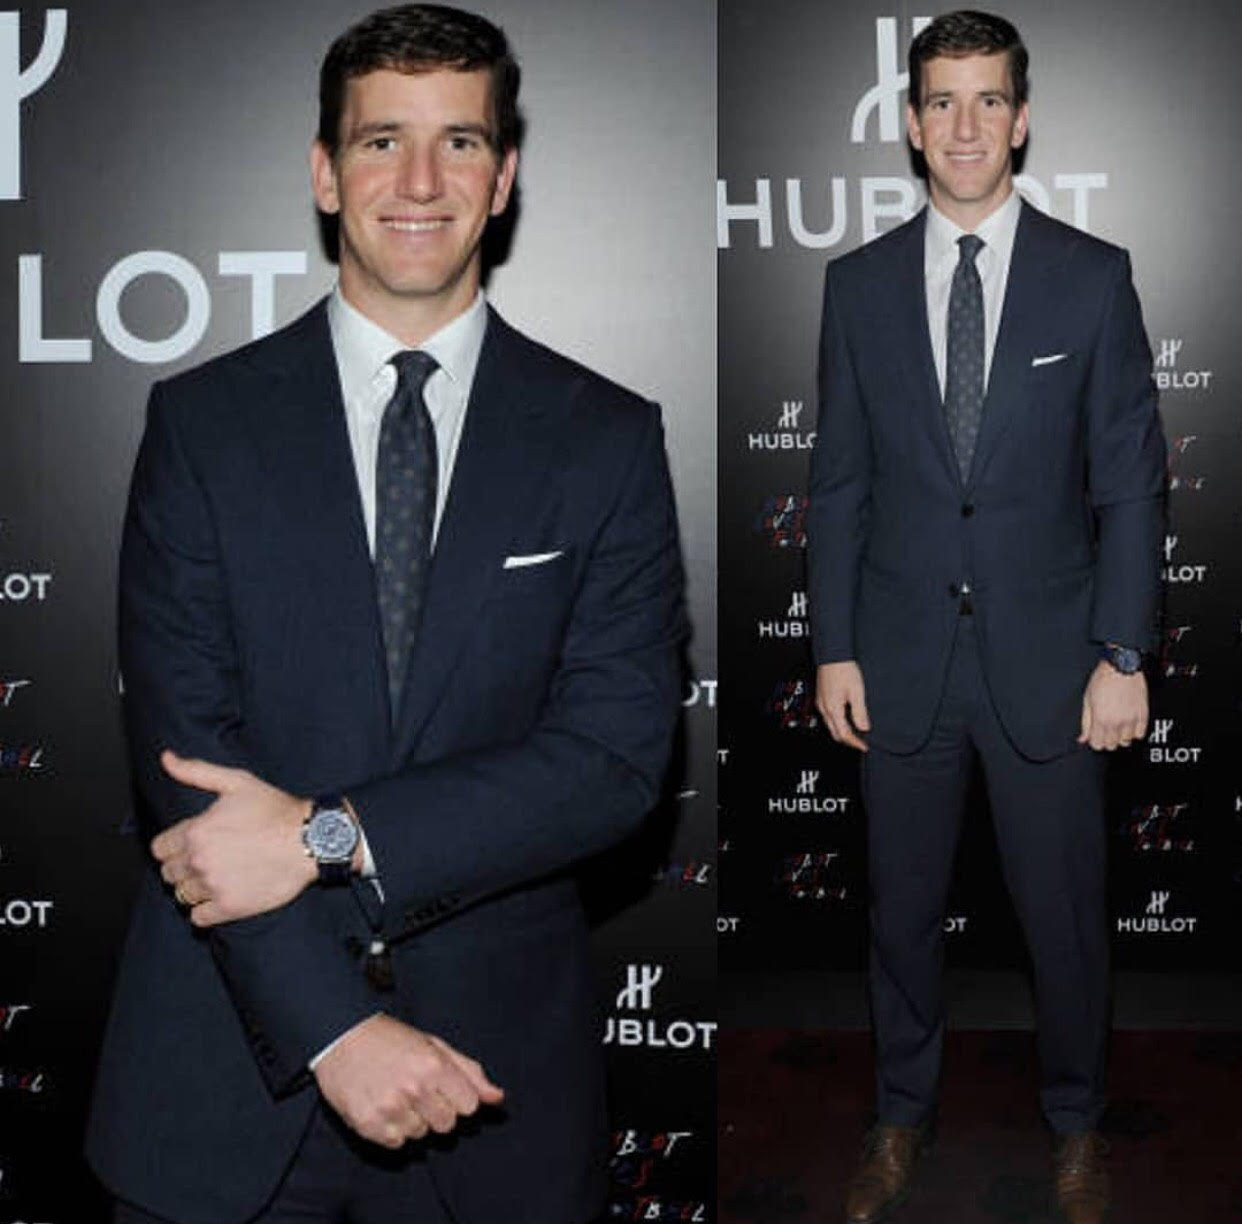 HUBLOT ANNOUNCES PARTNERSHIP WITH ELI MANNING QUARTERBACK OF THE NEW YORK GIANTS